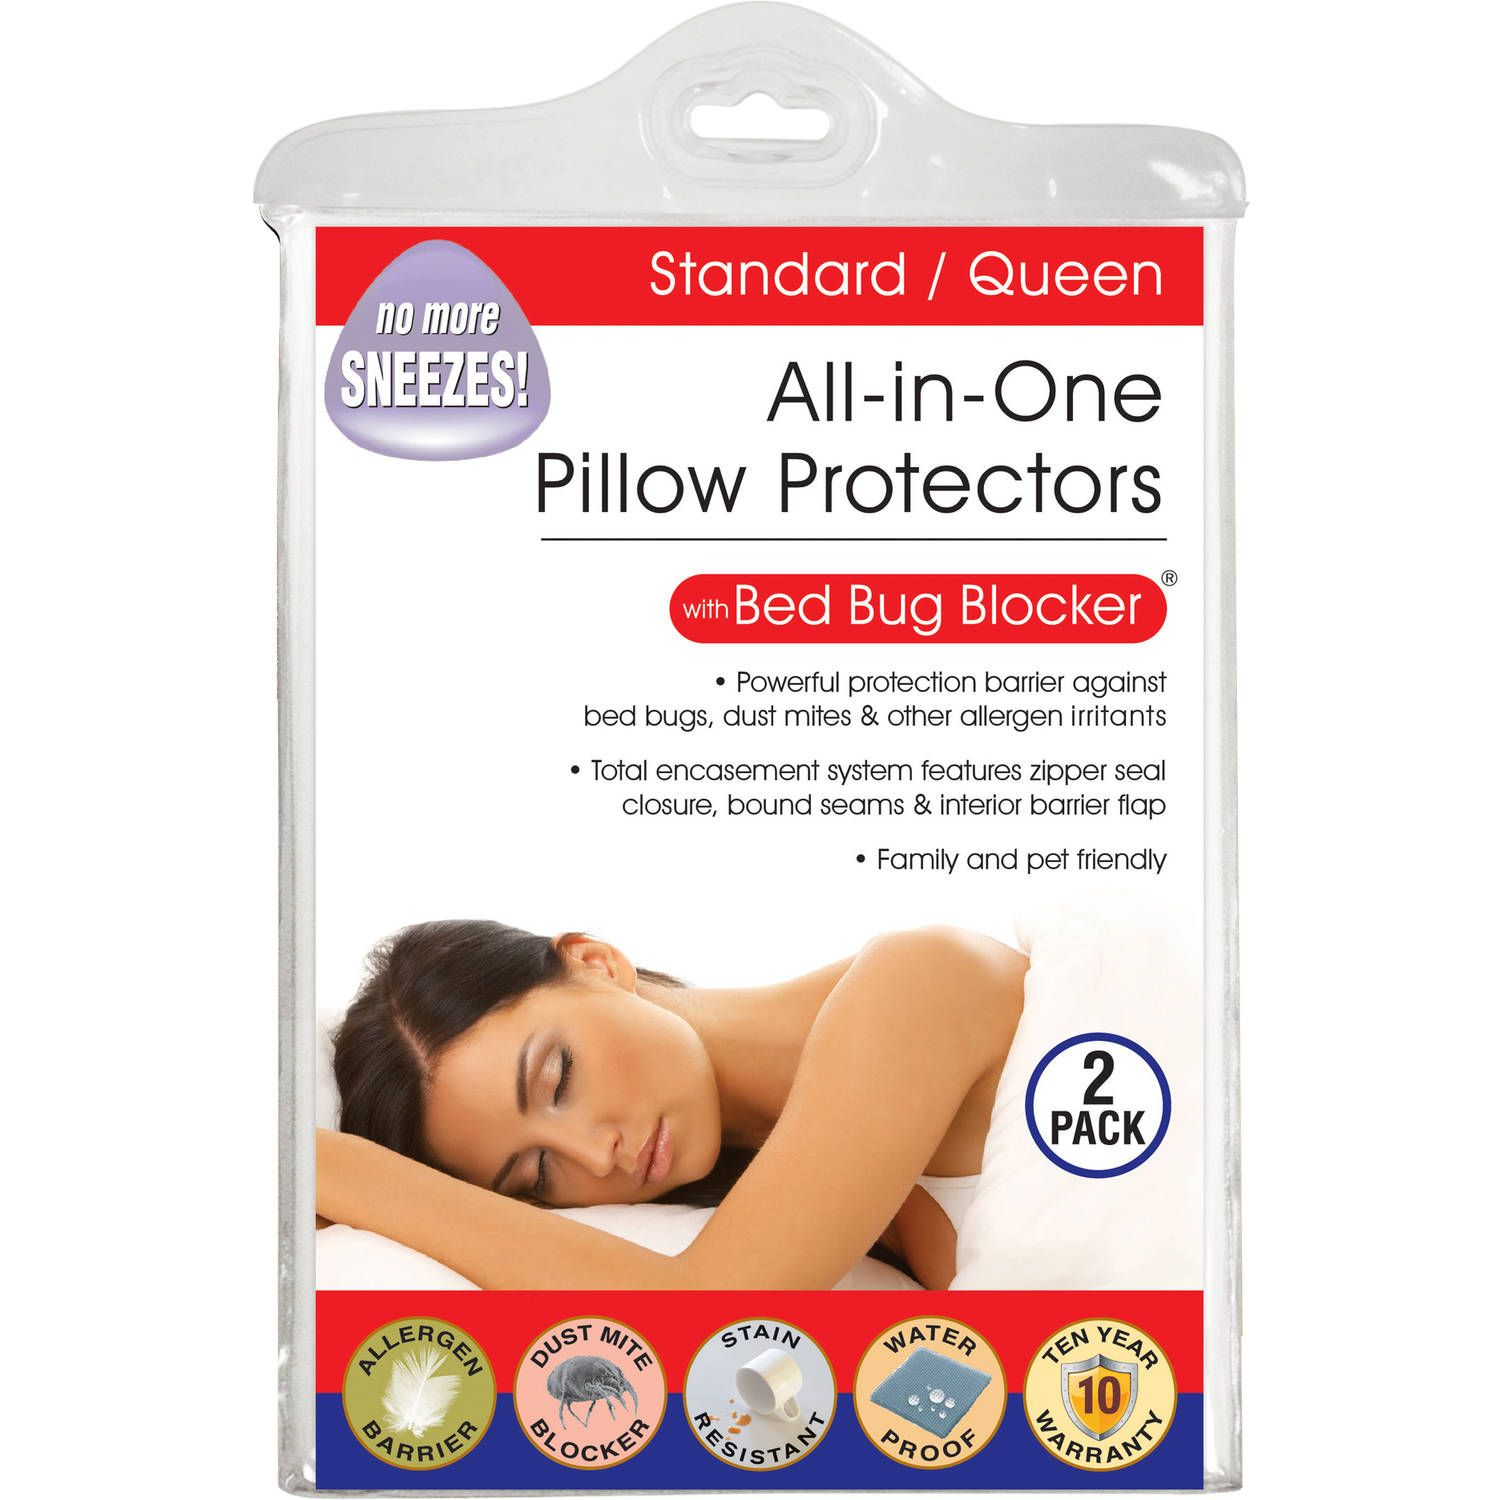 Luxury Cotton Rich Bed Bug Blocker Pillow Protector